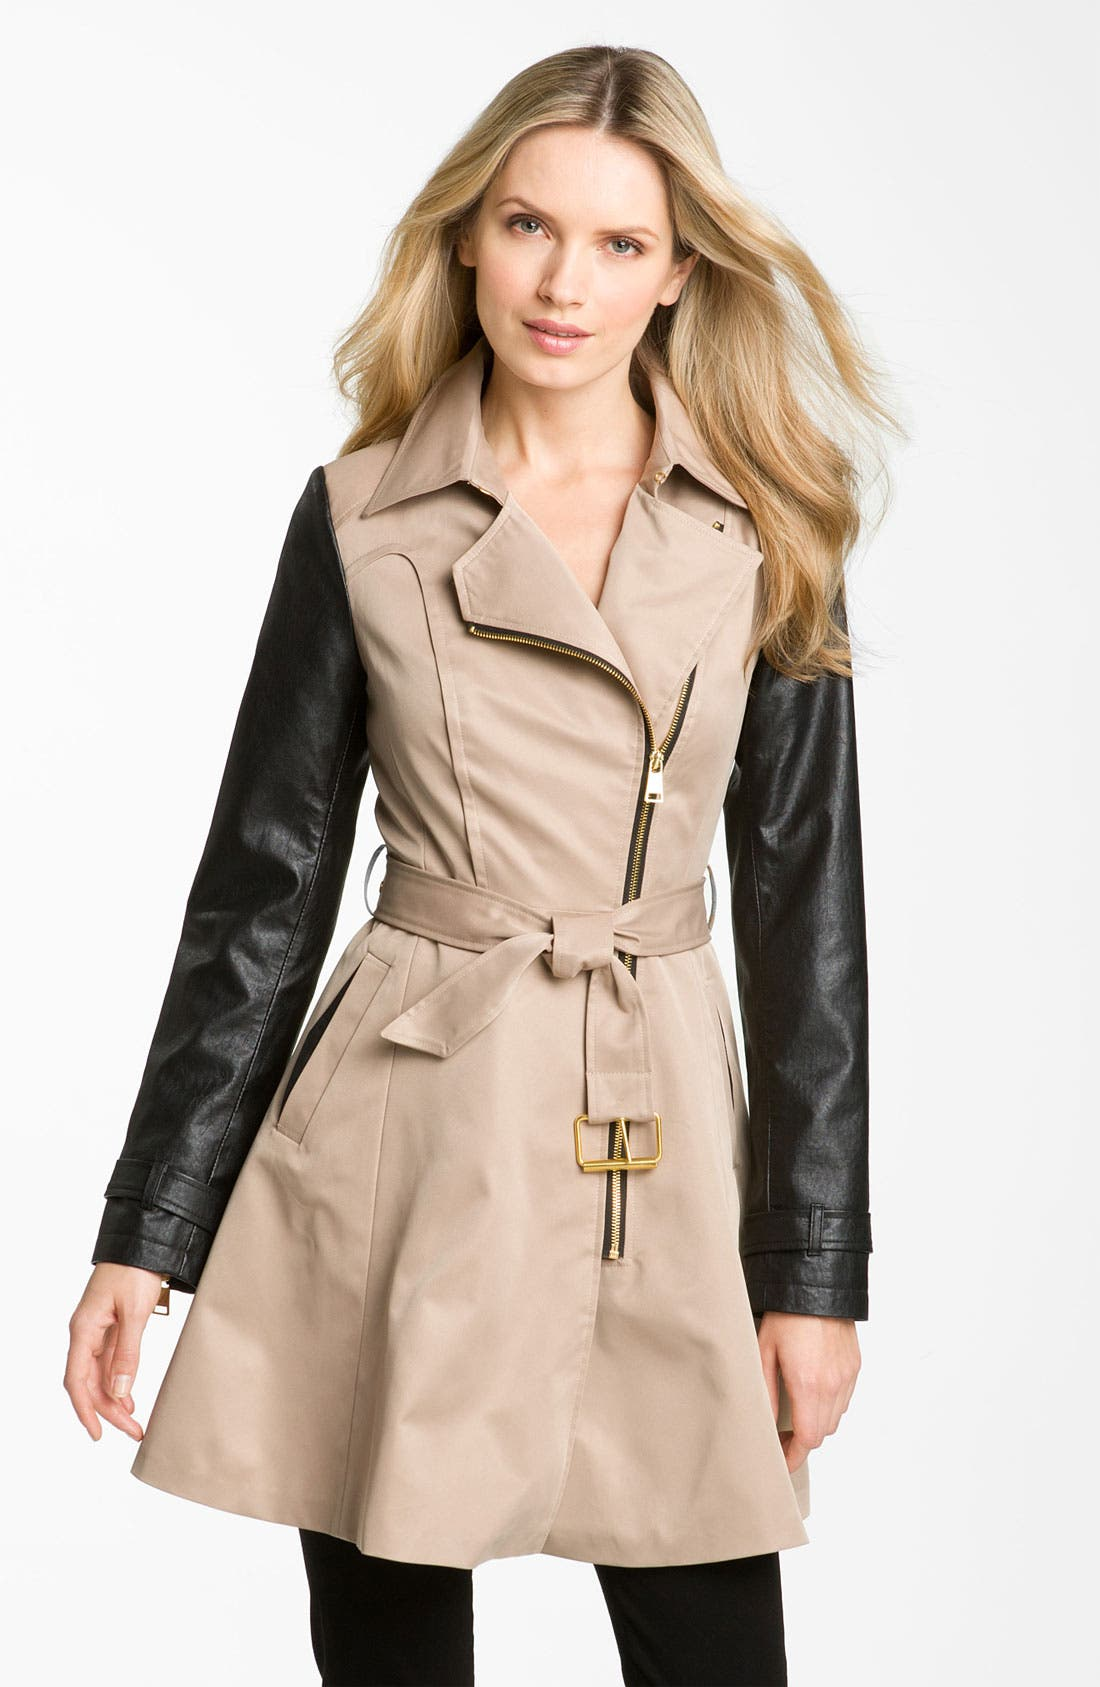 BEBE, Mixed Media Trench Coat, Main thumbnail 1, color, 250